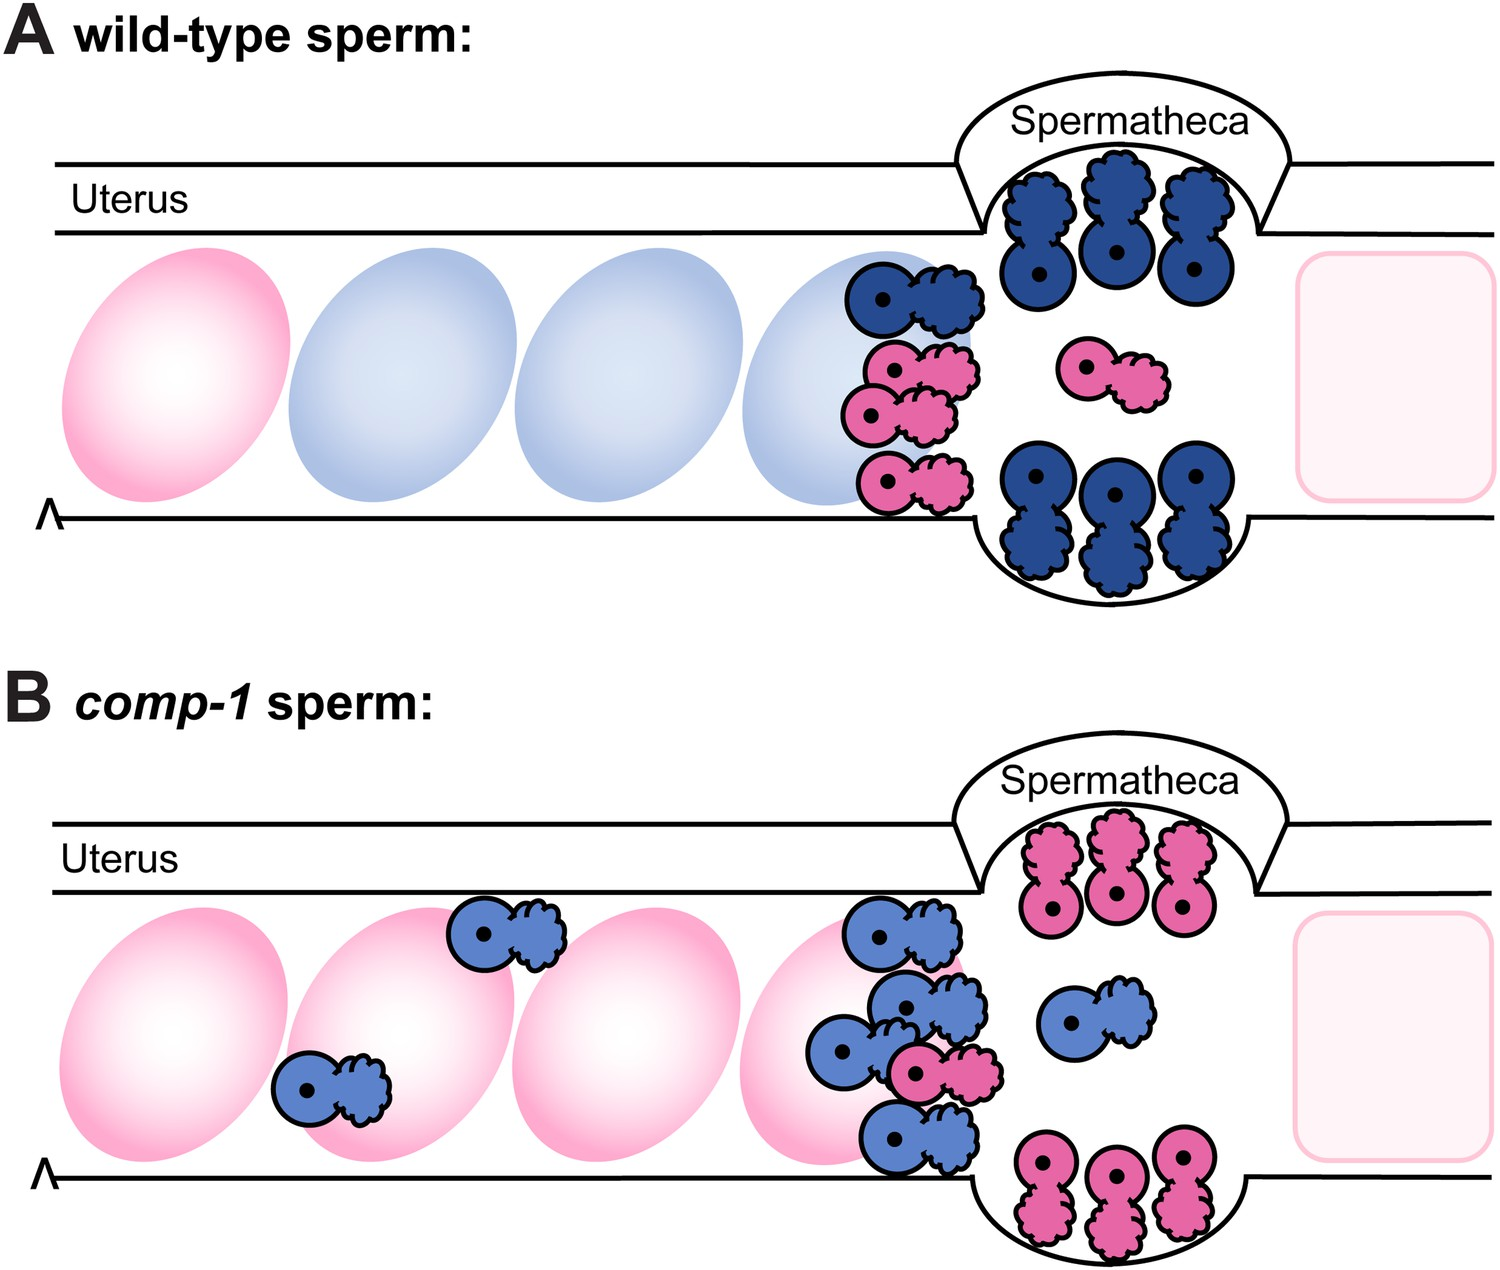 Model: comp-1 sperm have localization defects that result in failure to  compete with wild-type sperm.